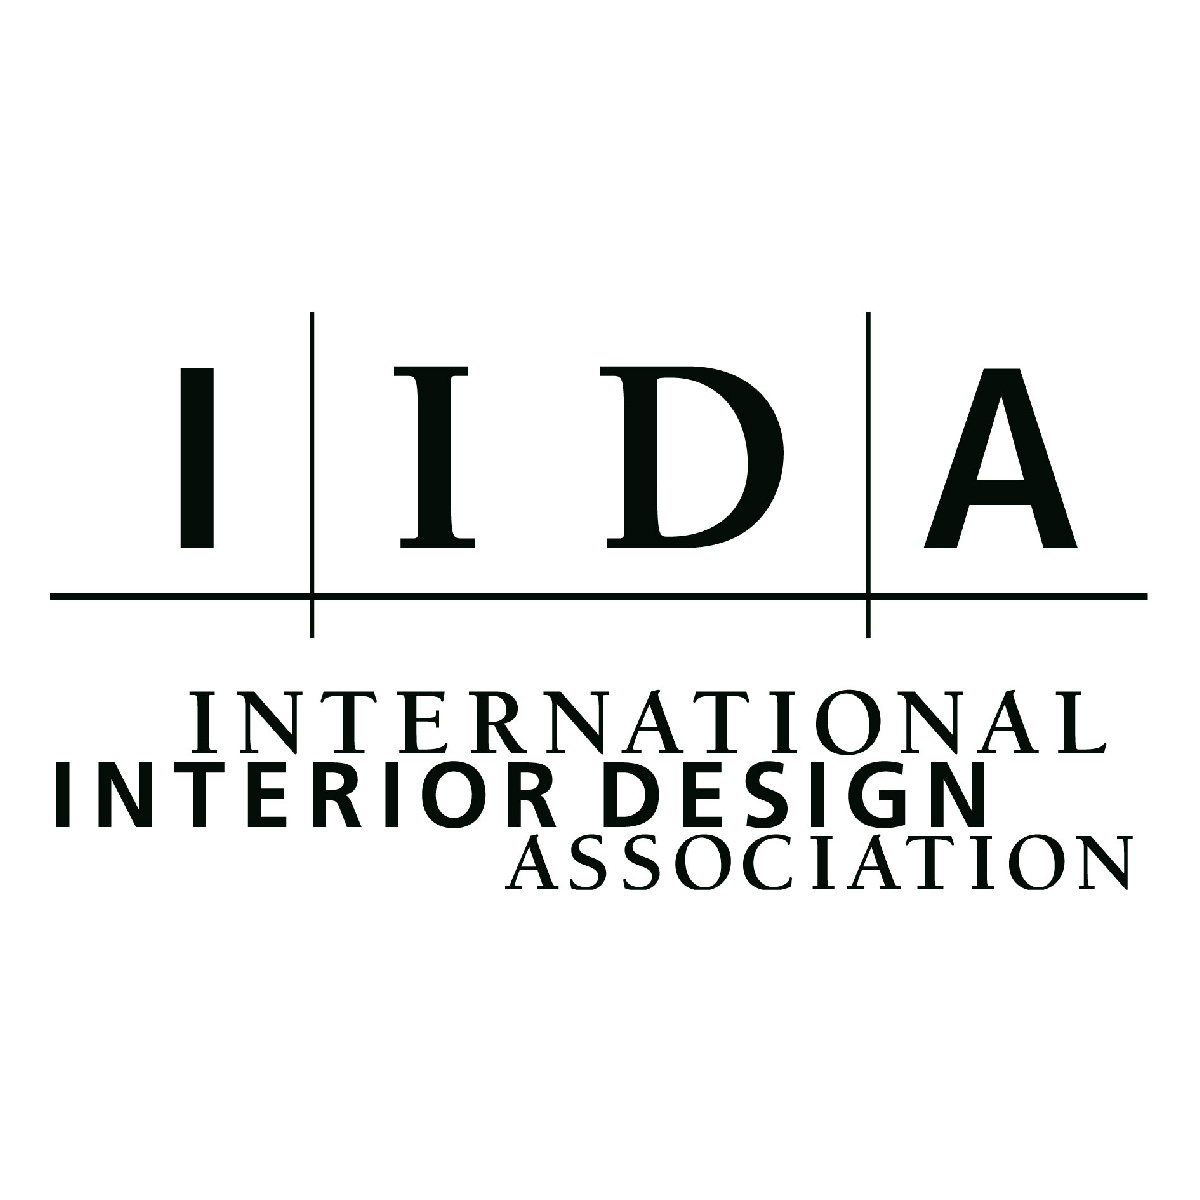 IIDA 2016 Interior Design Competition and Will Ching Design Competition